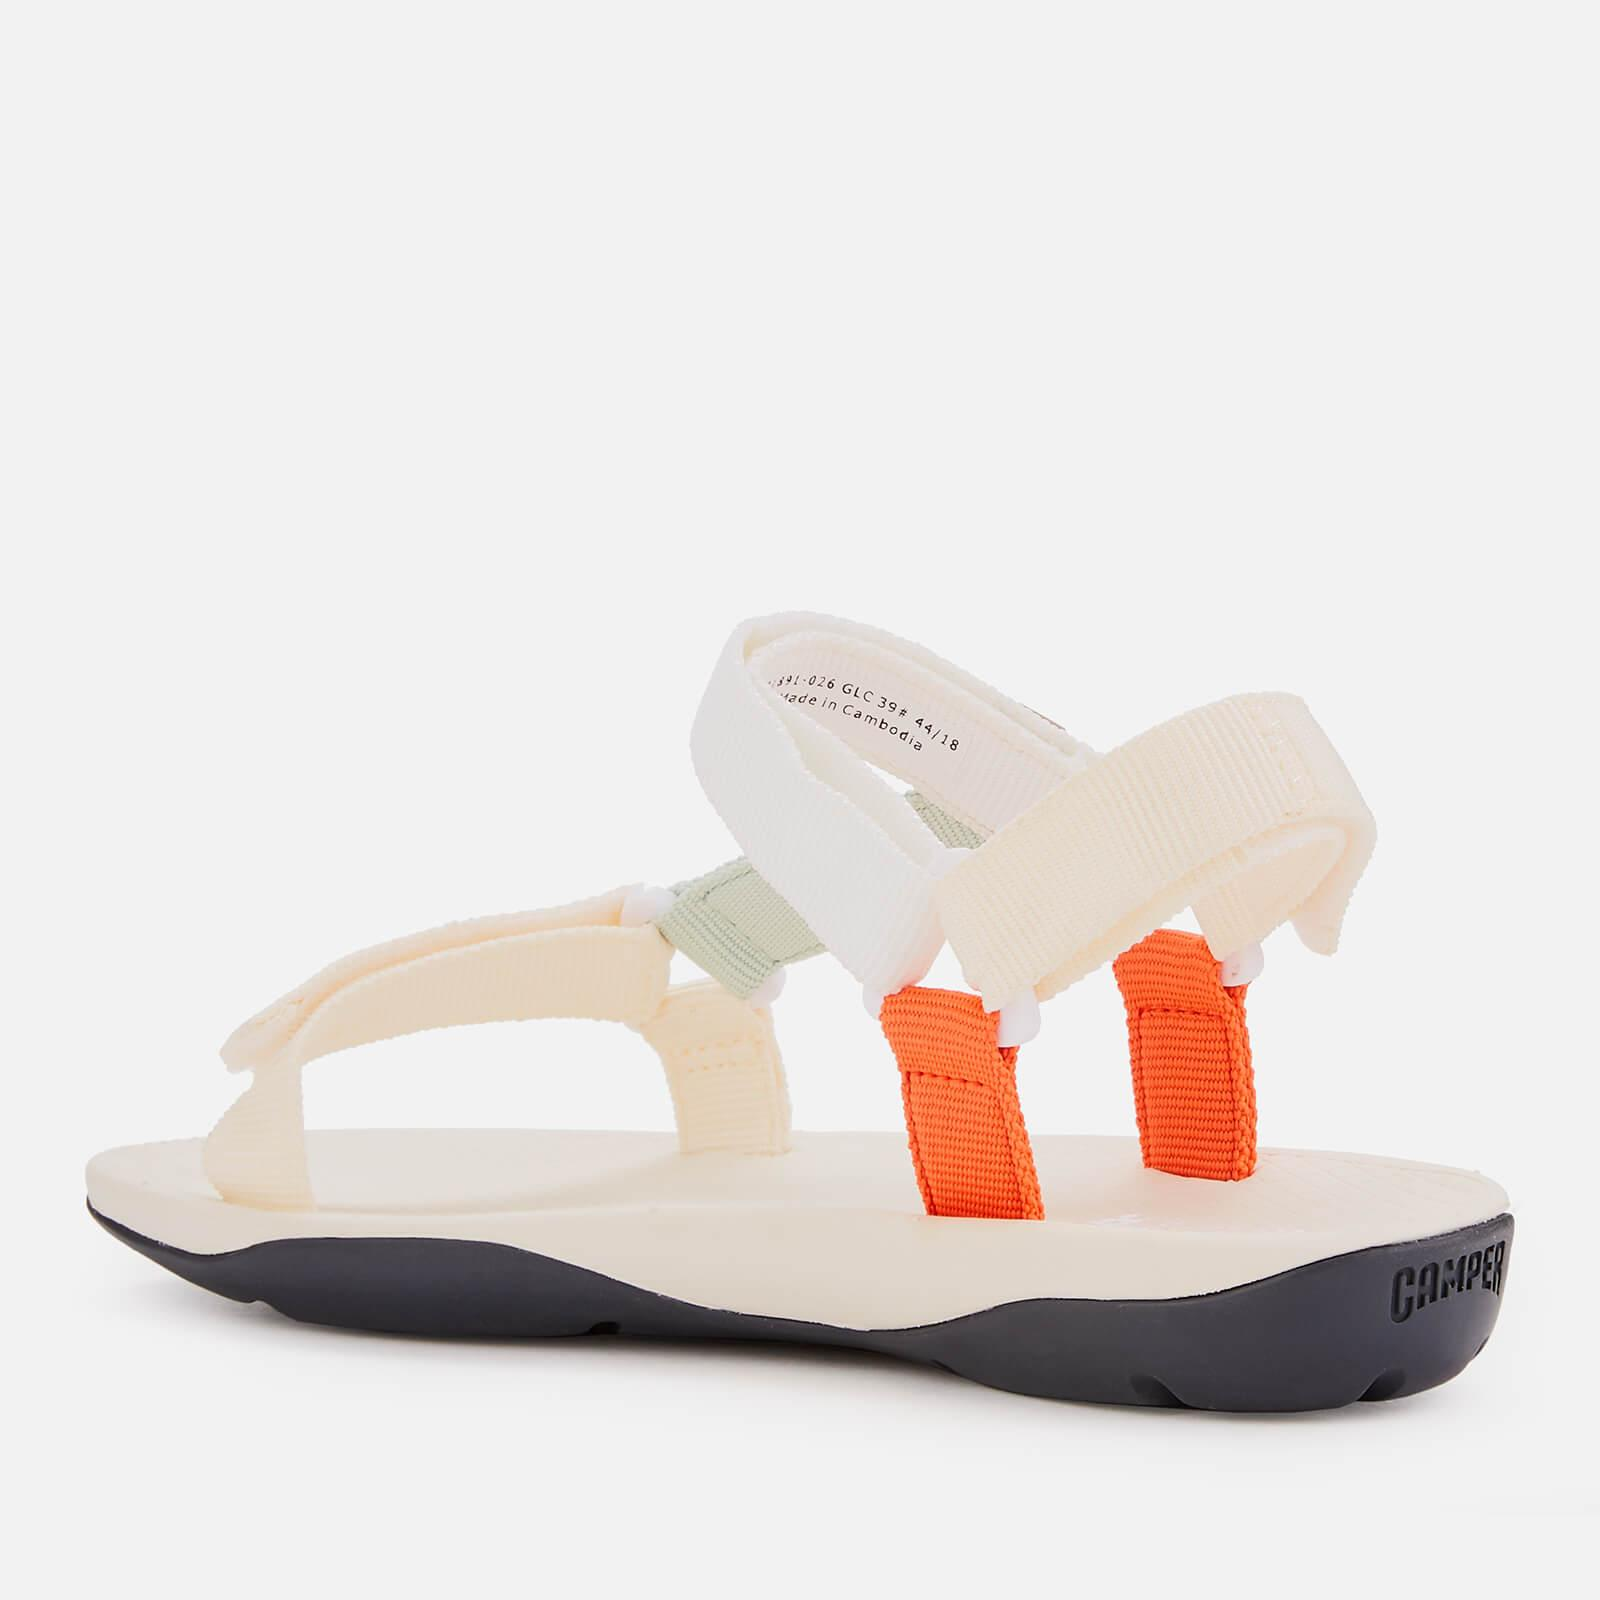 Camper Sporty Sandals in White - Lyst